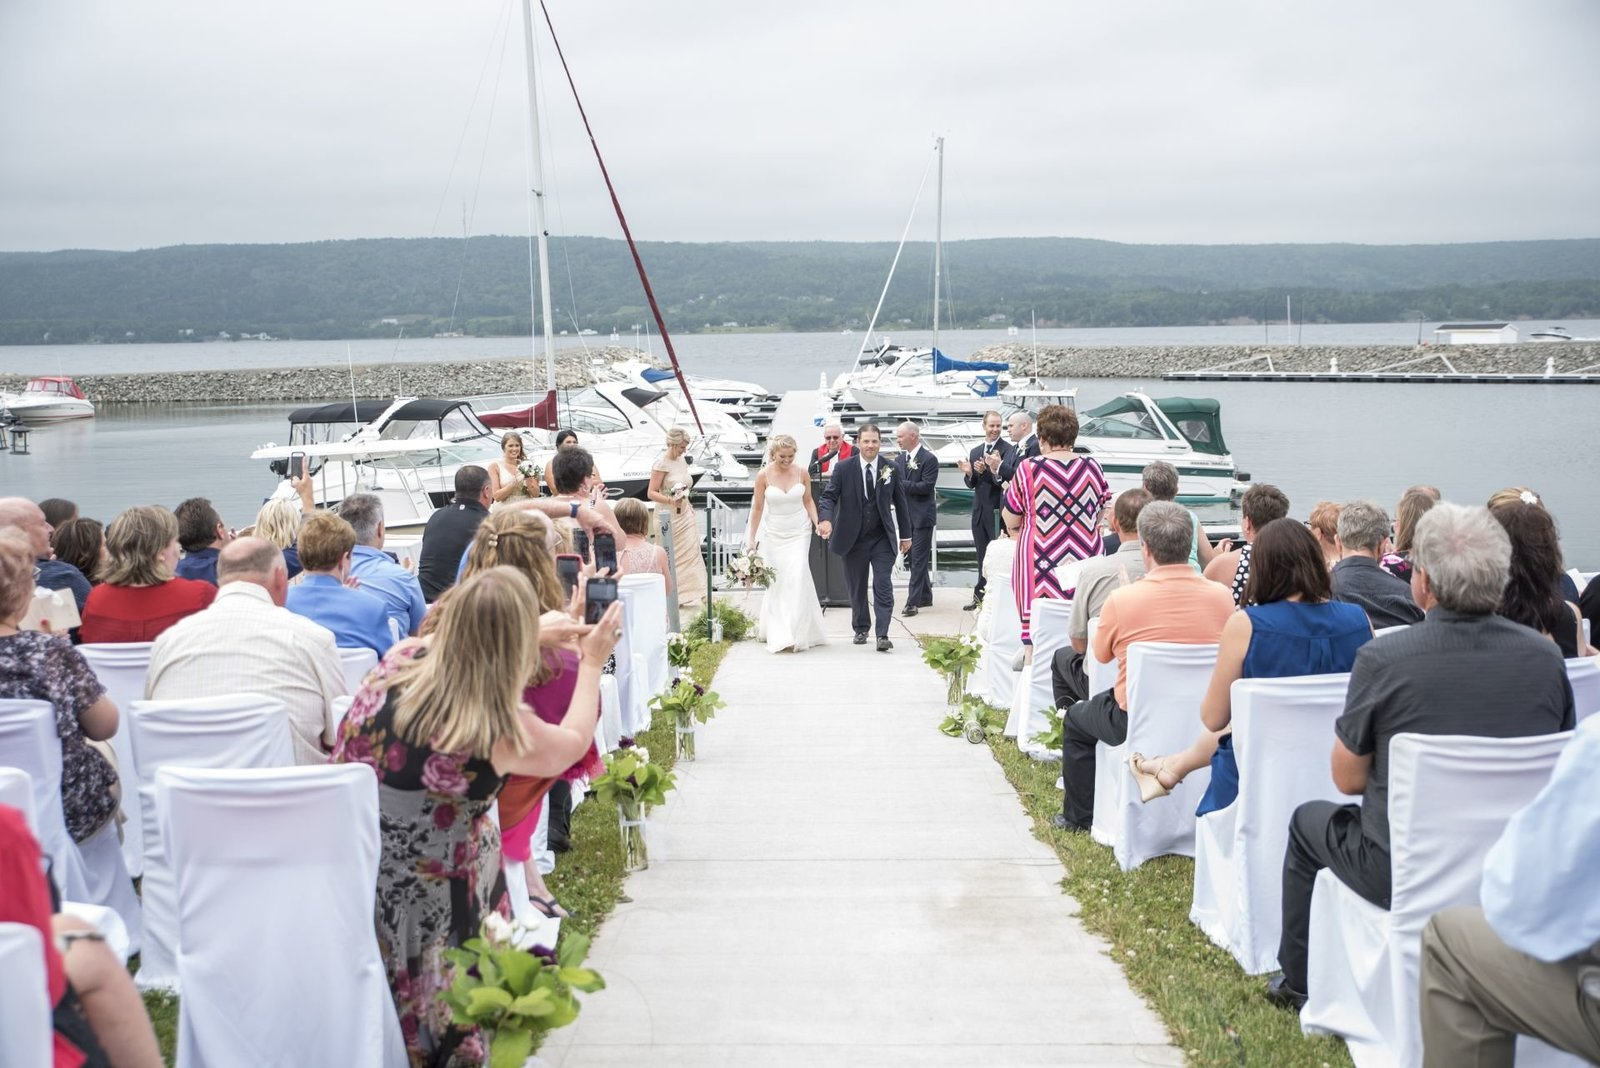 Andrew and Erica- Ben Eoin Yacht Club Wedding